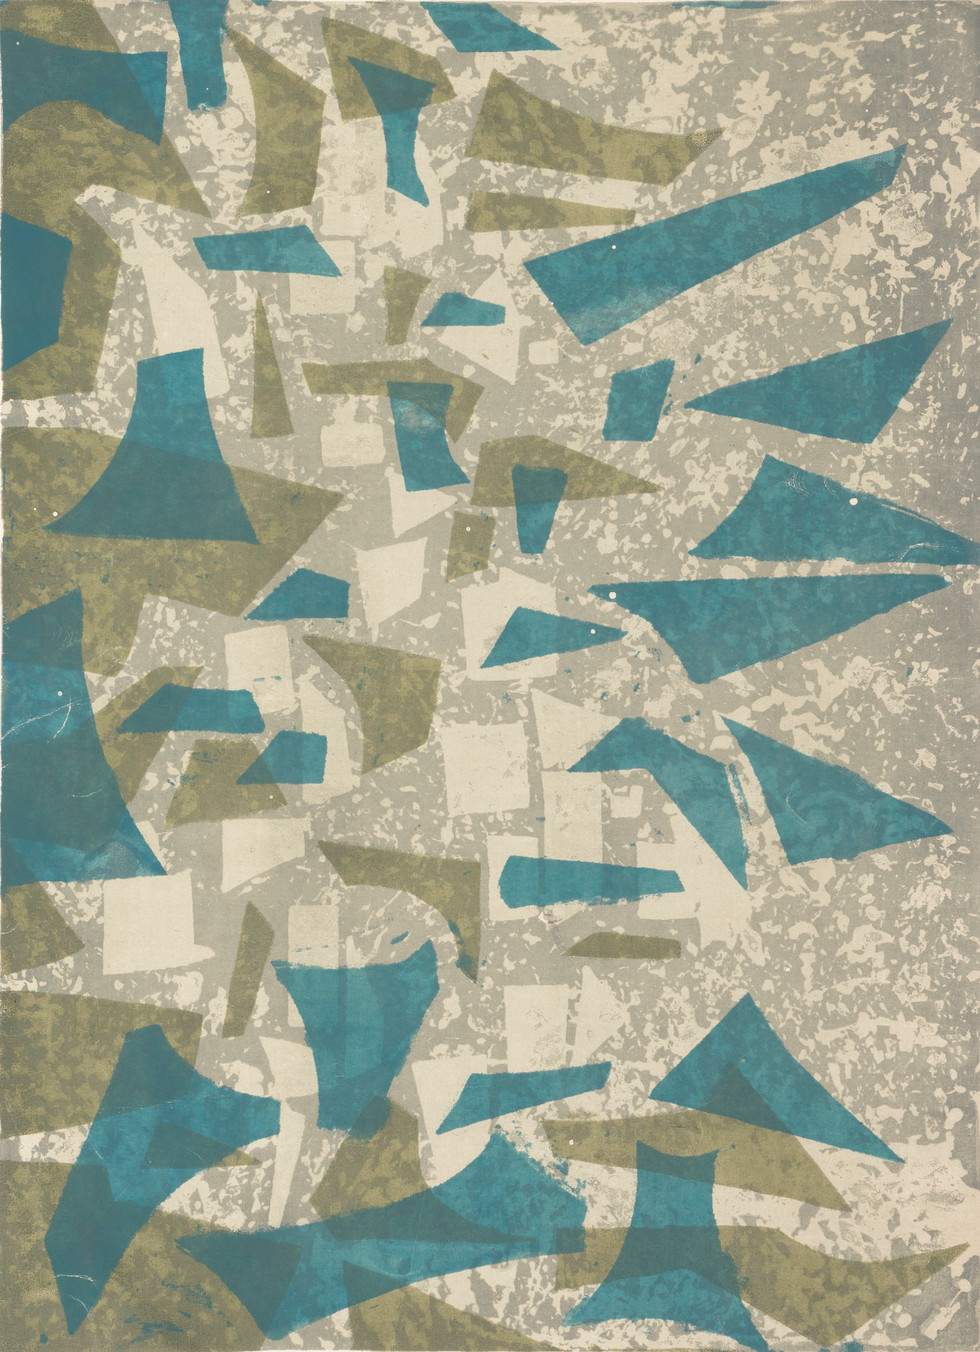 Untitled - abstract blue and green shapes on light brown and gray background